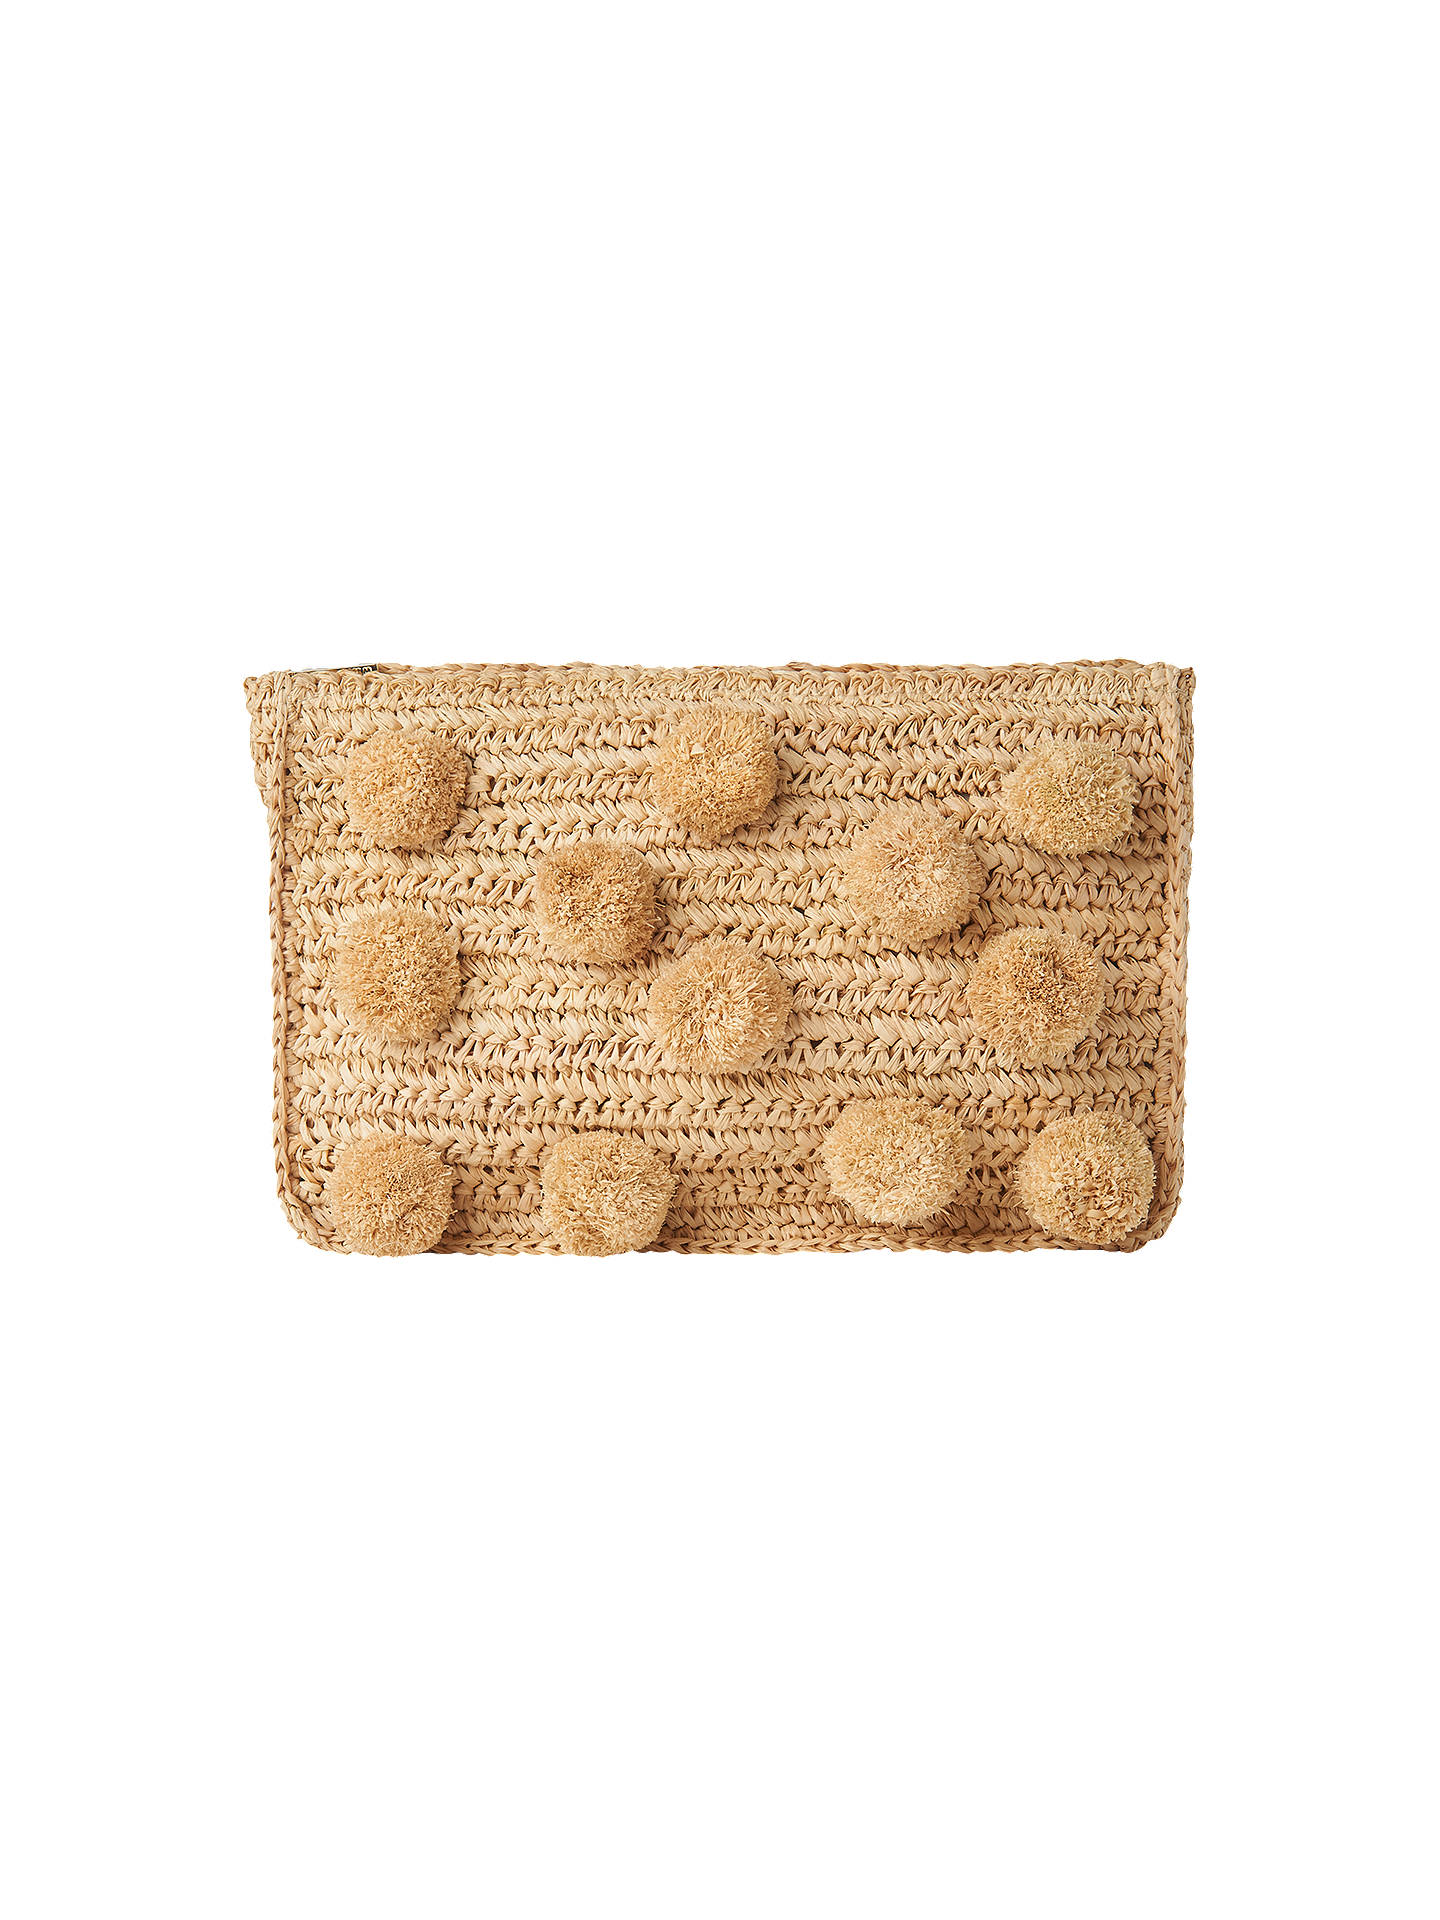 BuyWhistles Pom Pom Clutch Bag, Neutral Online at johnlewis.com